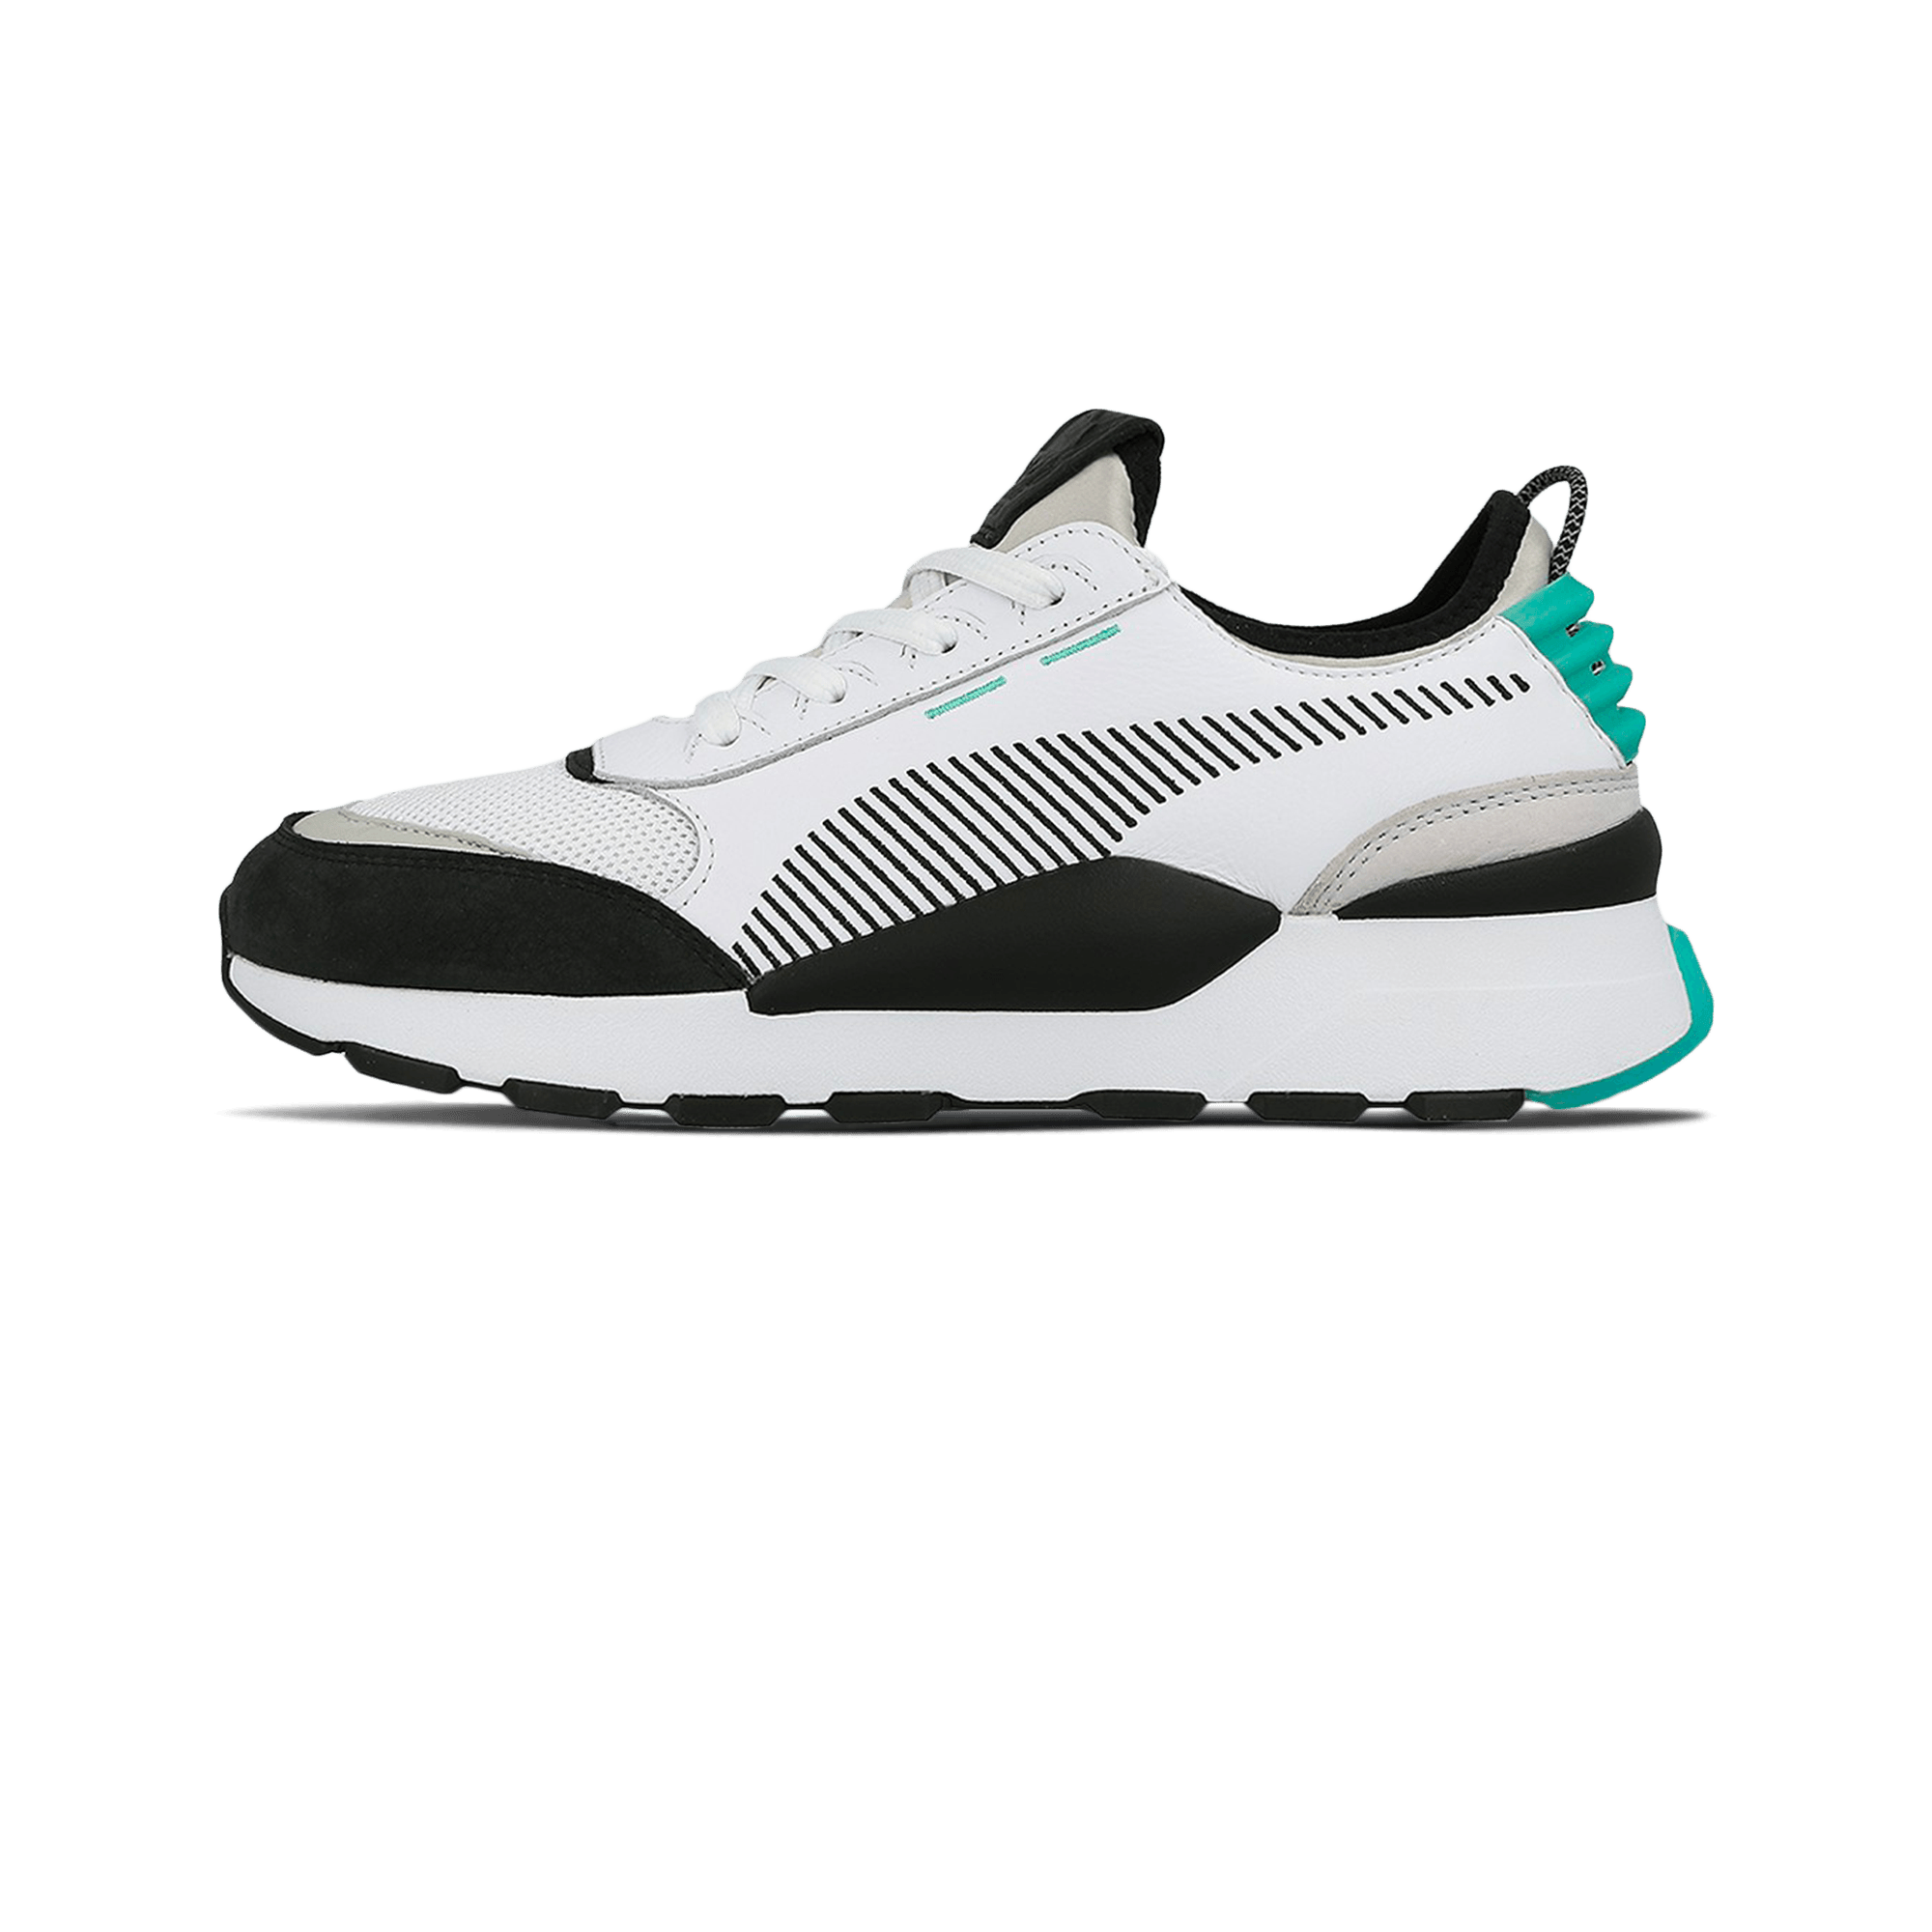 Puma RS 0 Re Invention white gray violet biscay green Men |